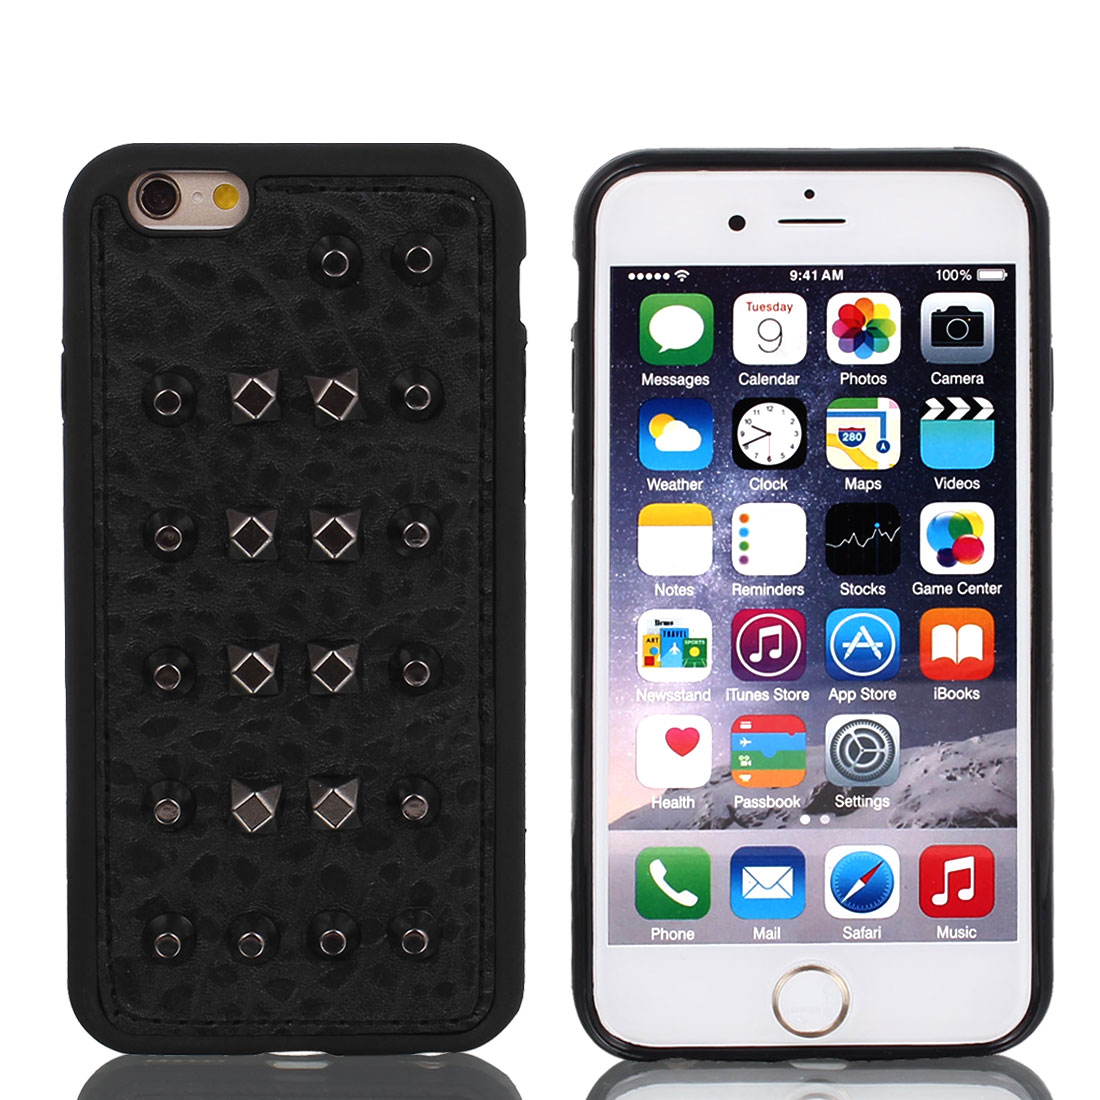 Faux Leather Protector Rugged Cover Case Black + Film for Apple iPhone 6 4.7""